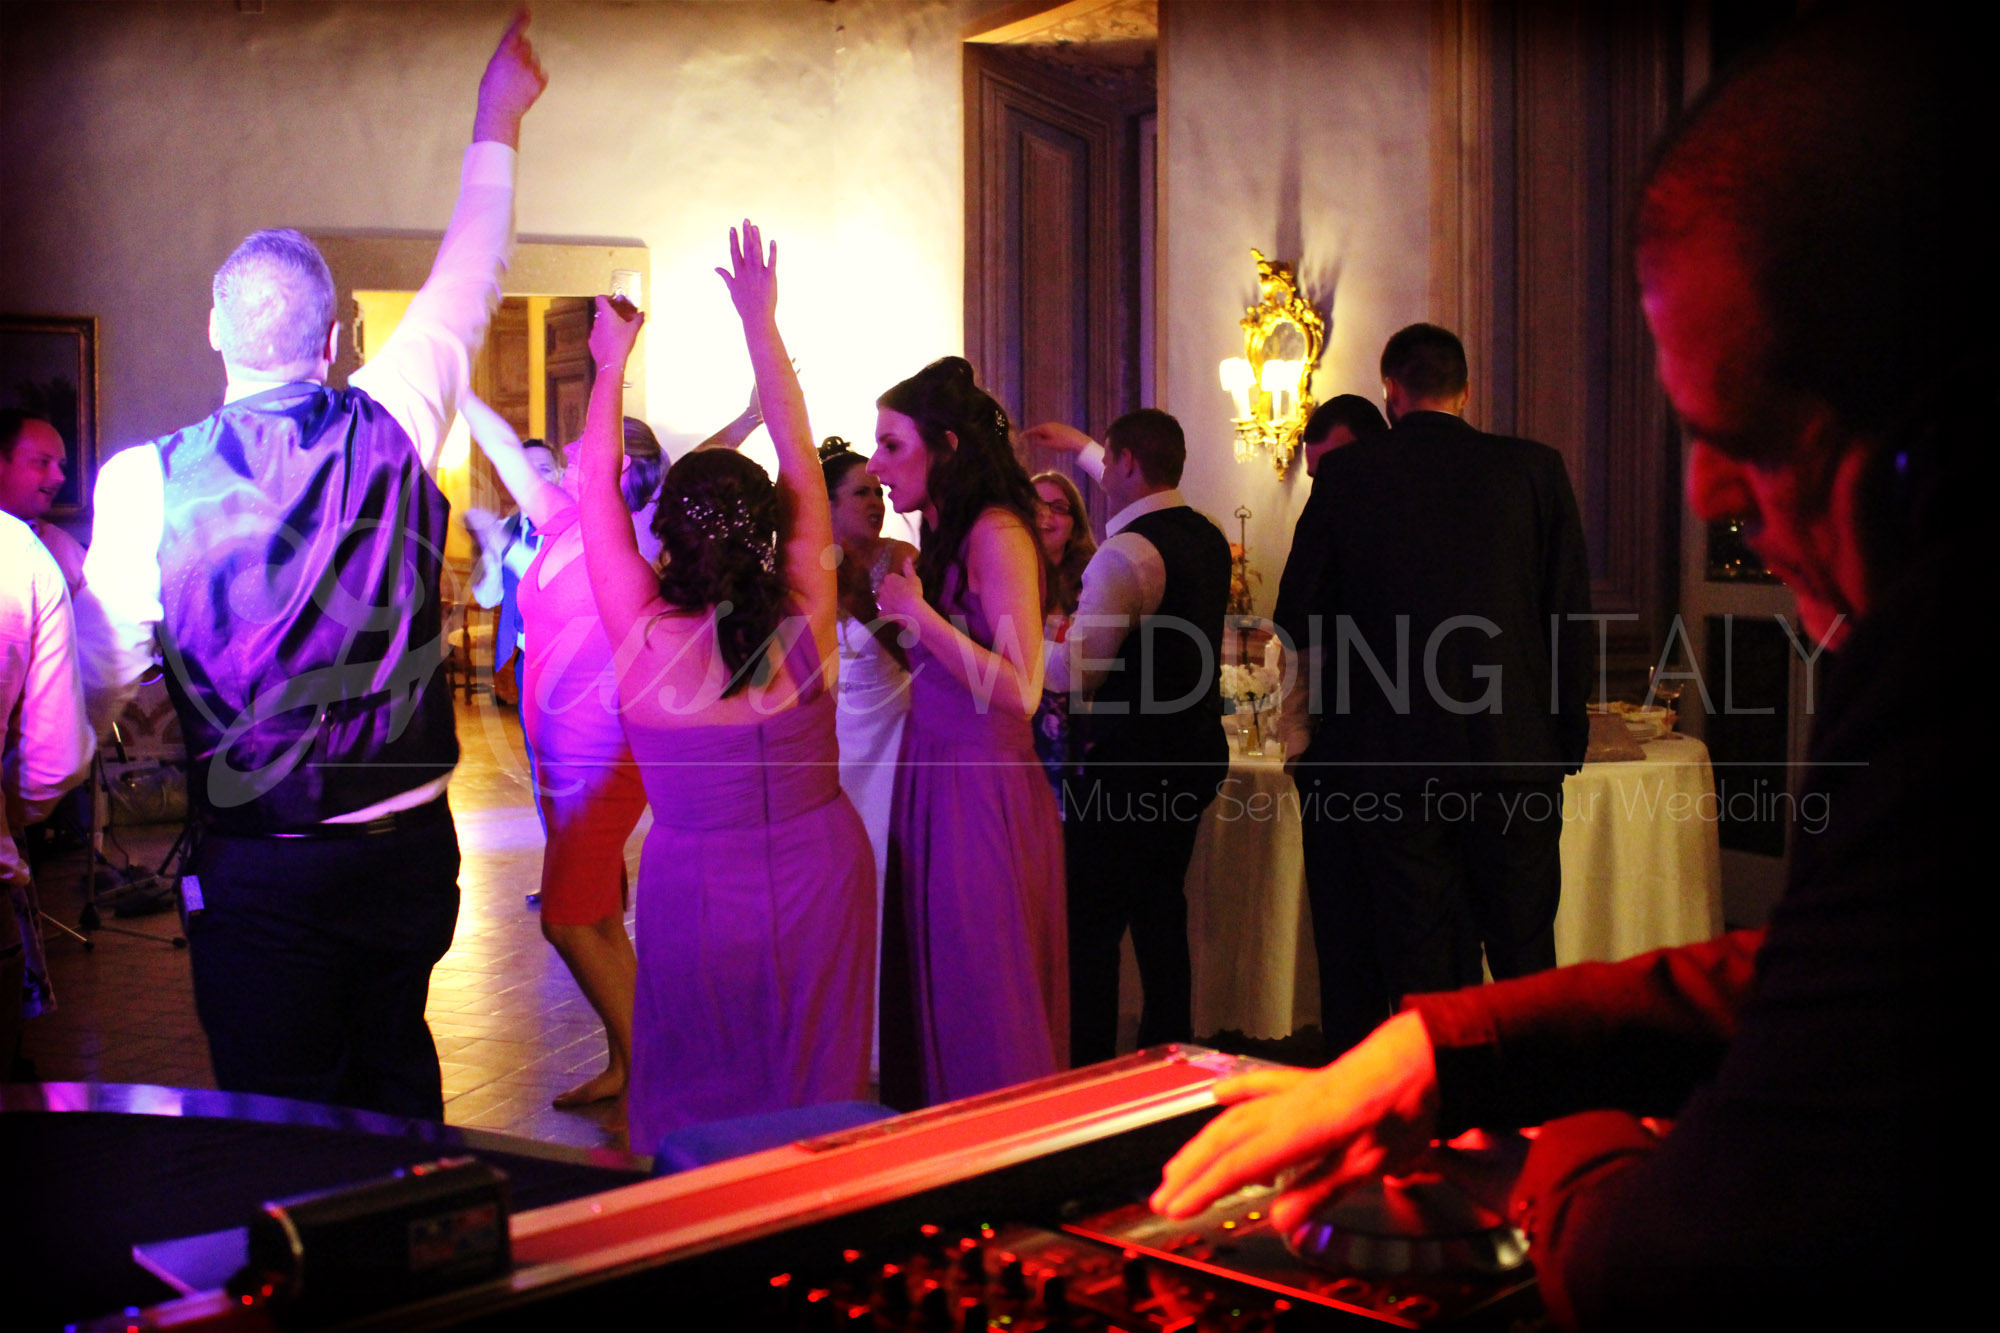 Wedding dj for your wedding in italy - Wedding Rome Italy Florence Siena Tuscany